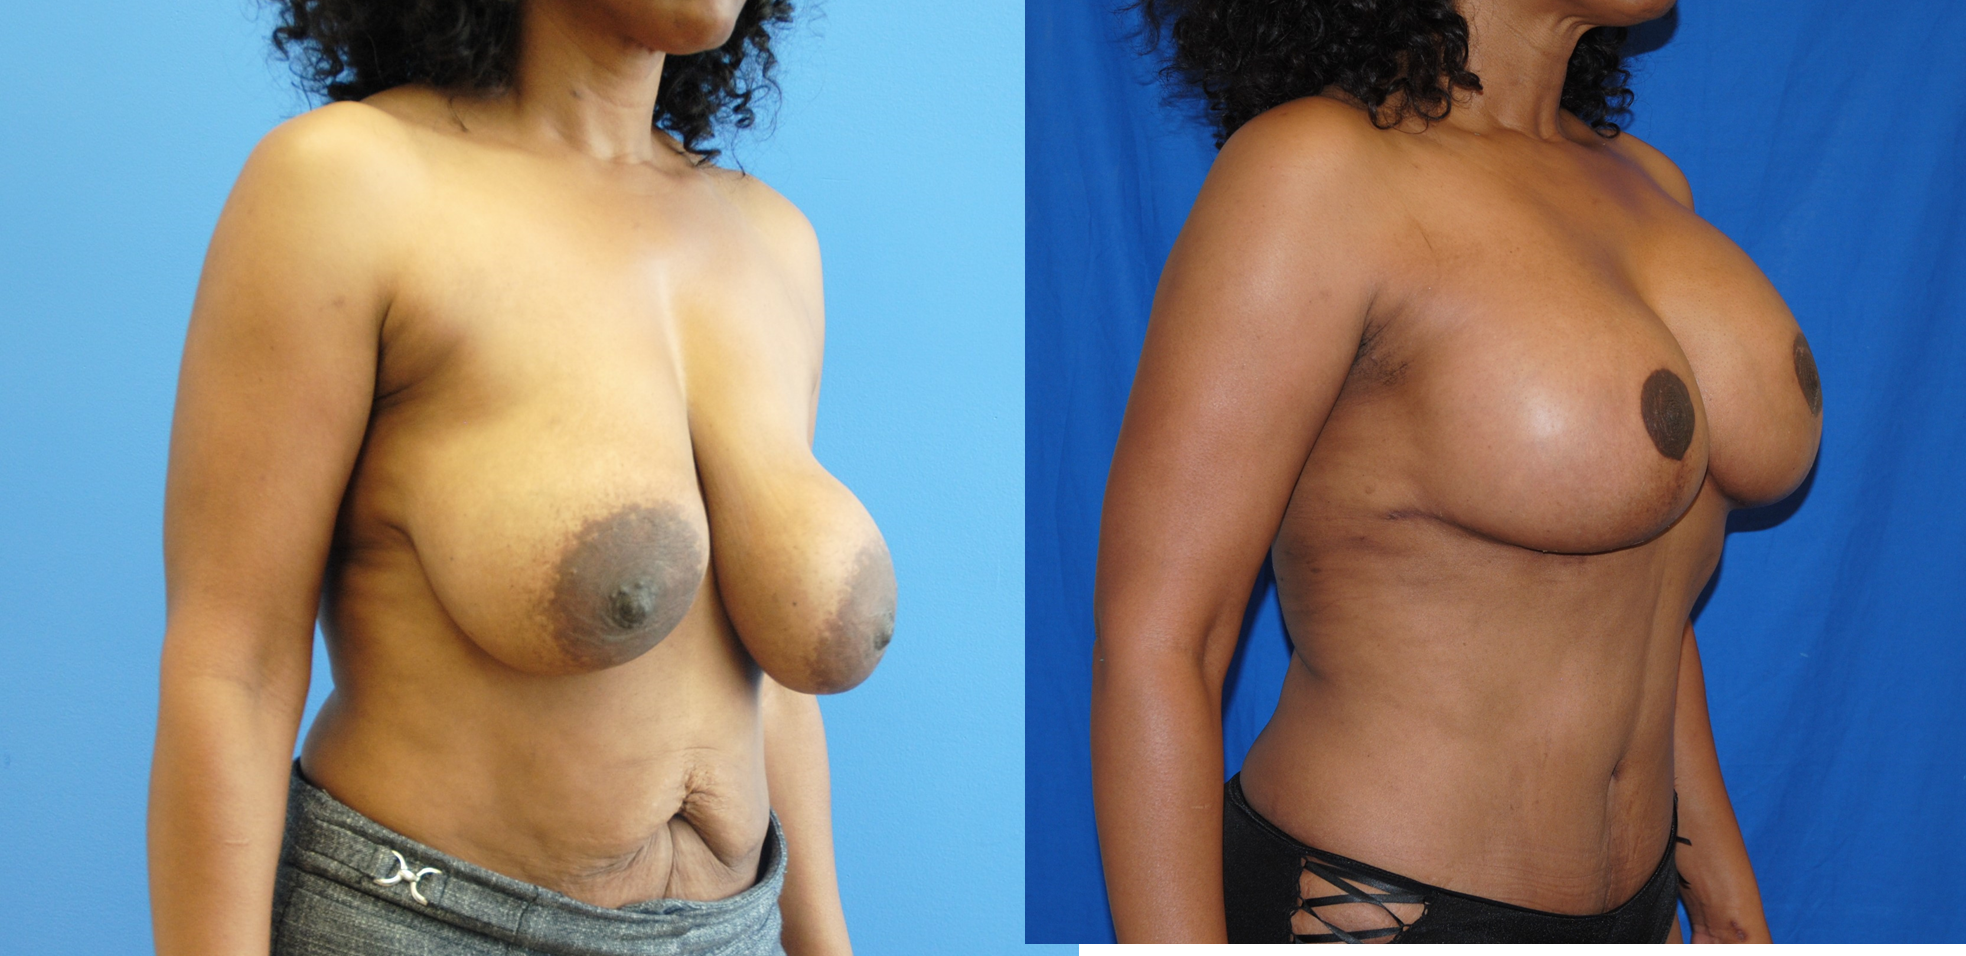 Mastopexy-Breast-Lift-Removal-and-Replacement-Newport-Beach-Brian-Dickinson-M.D